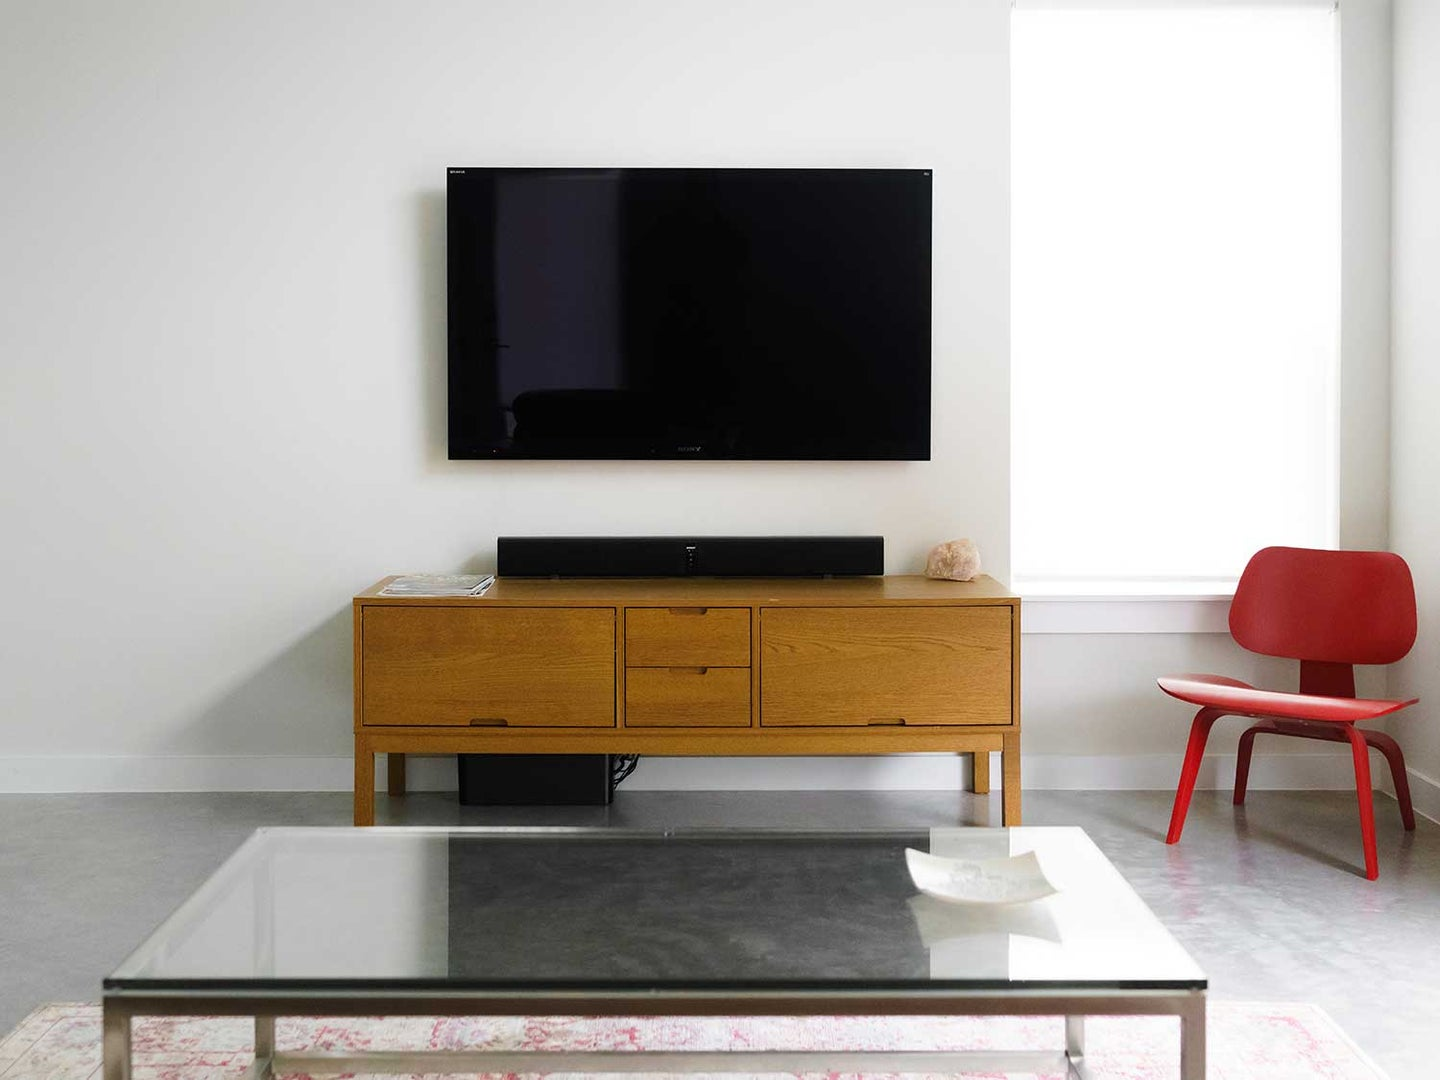 Wall-mounted TV in living room with entertainment center, coffee table, and chair.